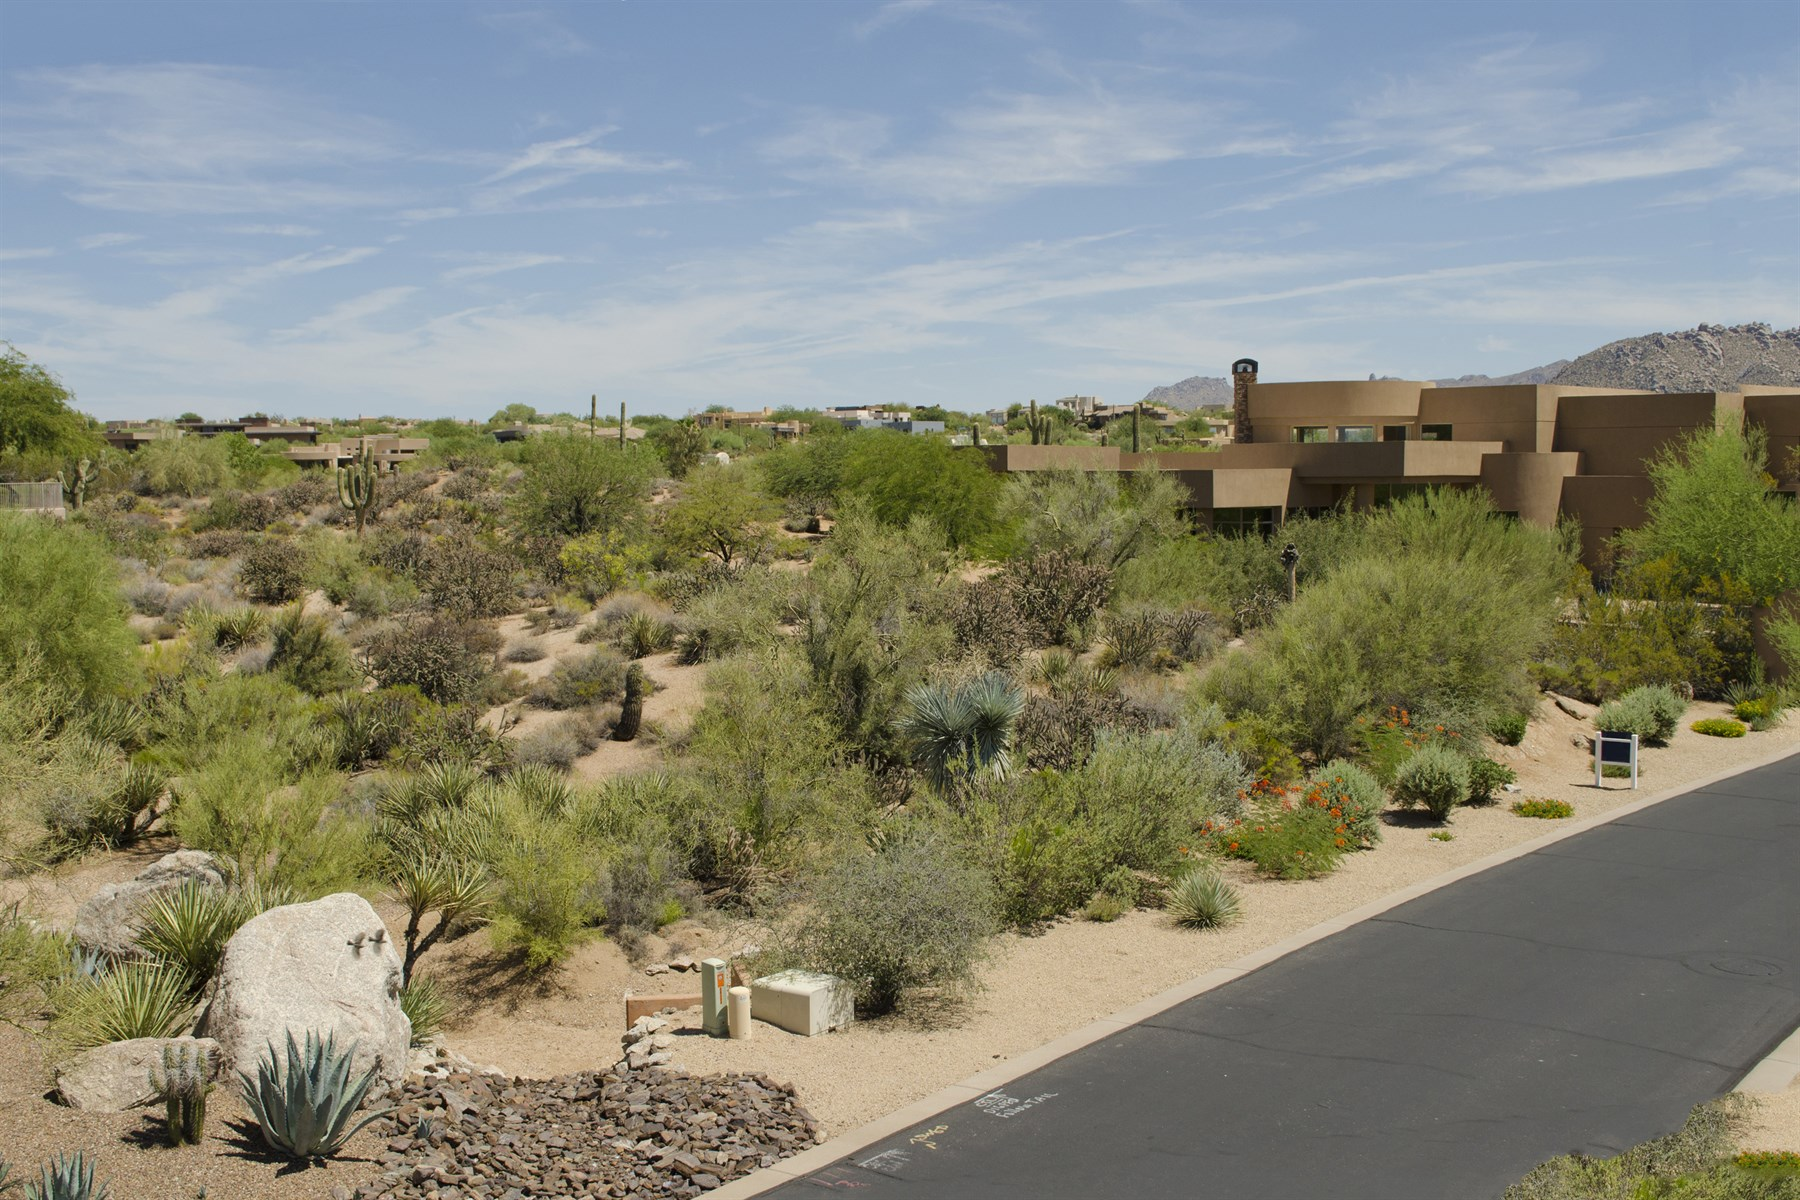 Land for Sale at Beautiful lot in the guard-gated community of Candlewood Estates. 29121 N 105TH ST 127 Scottsdale, Arizona, 85262 United States